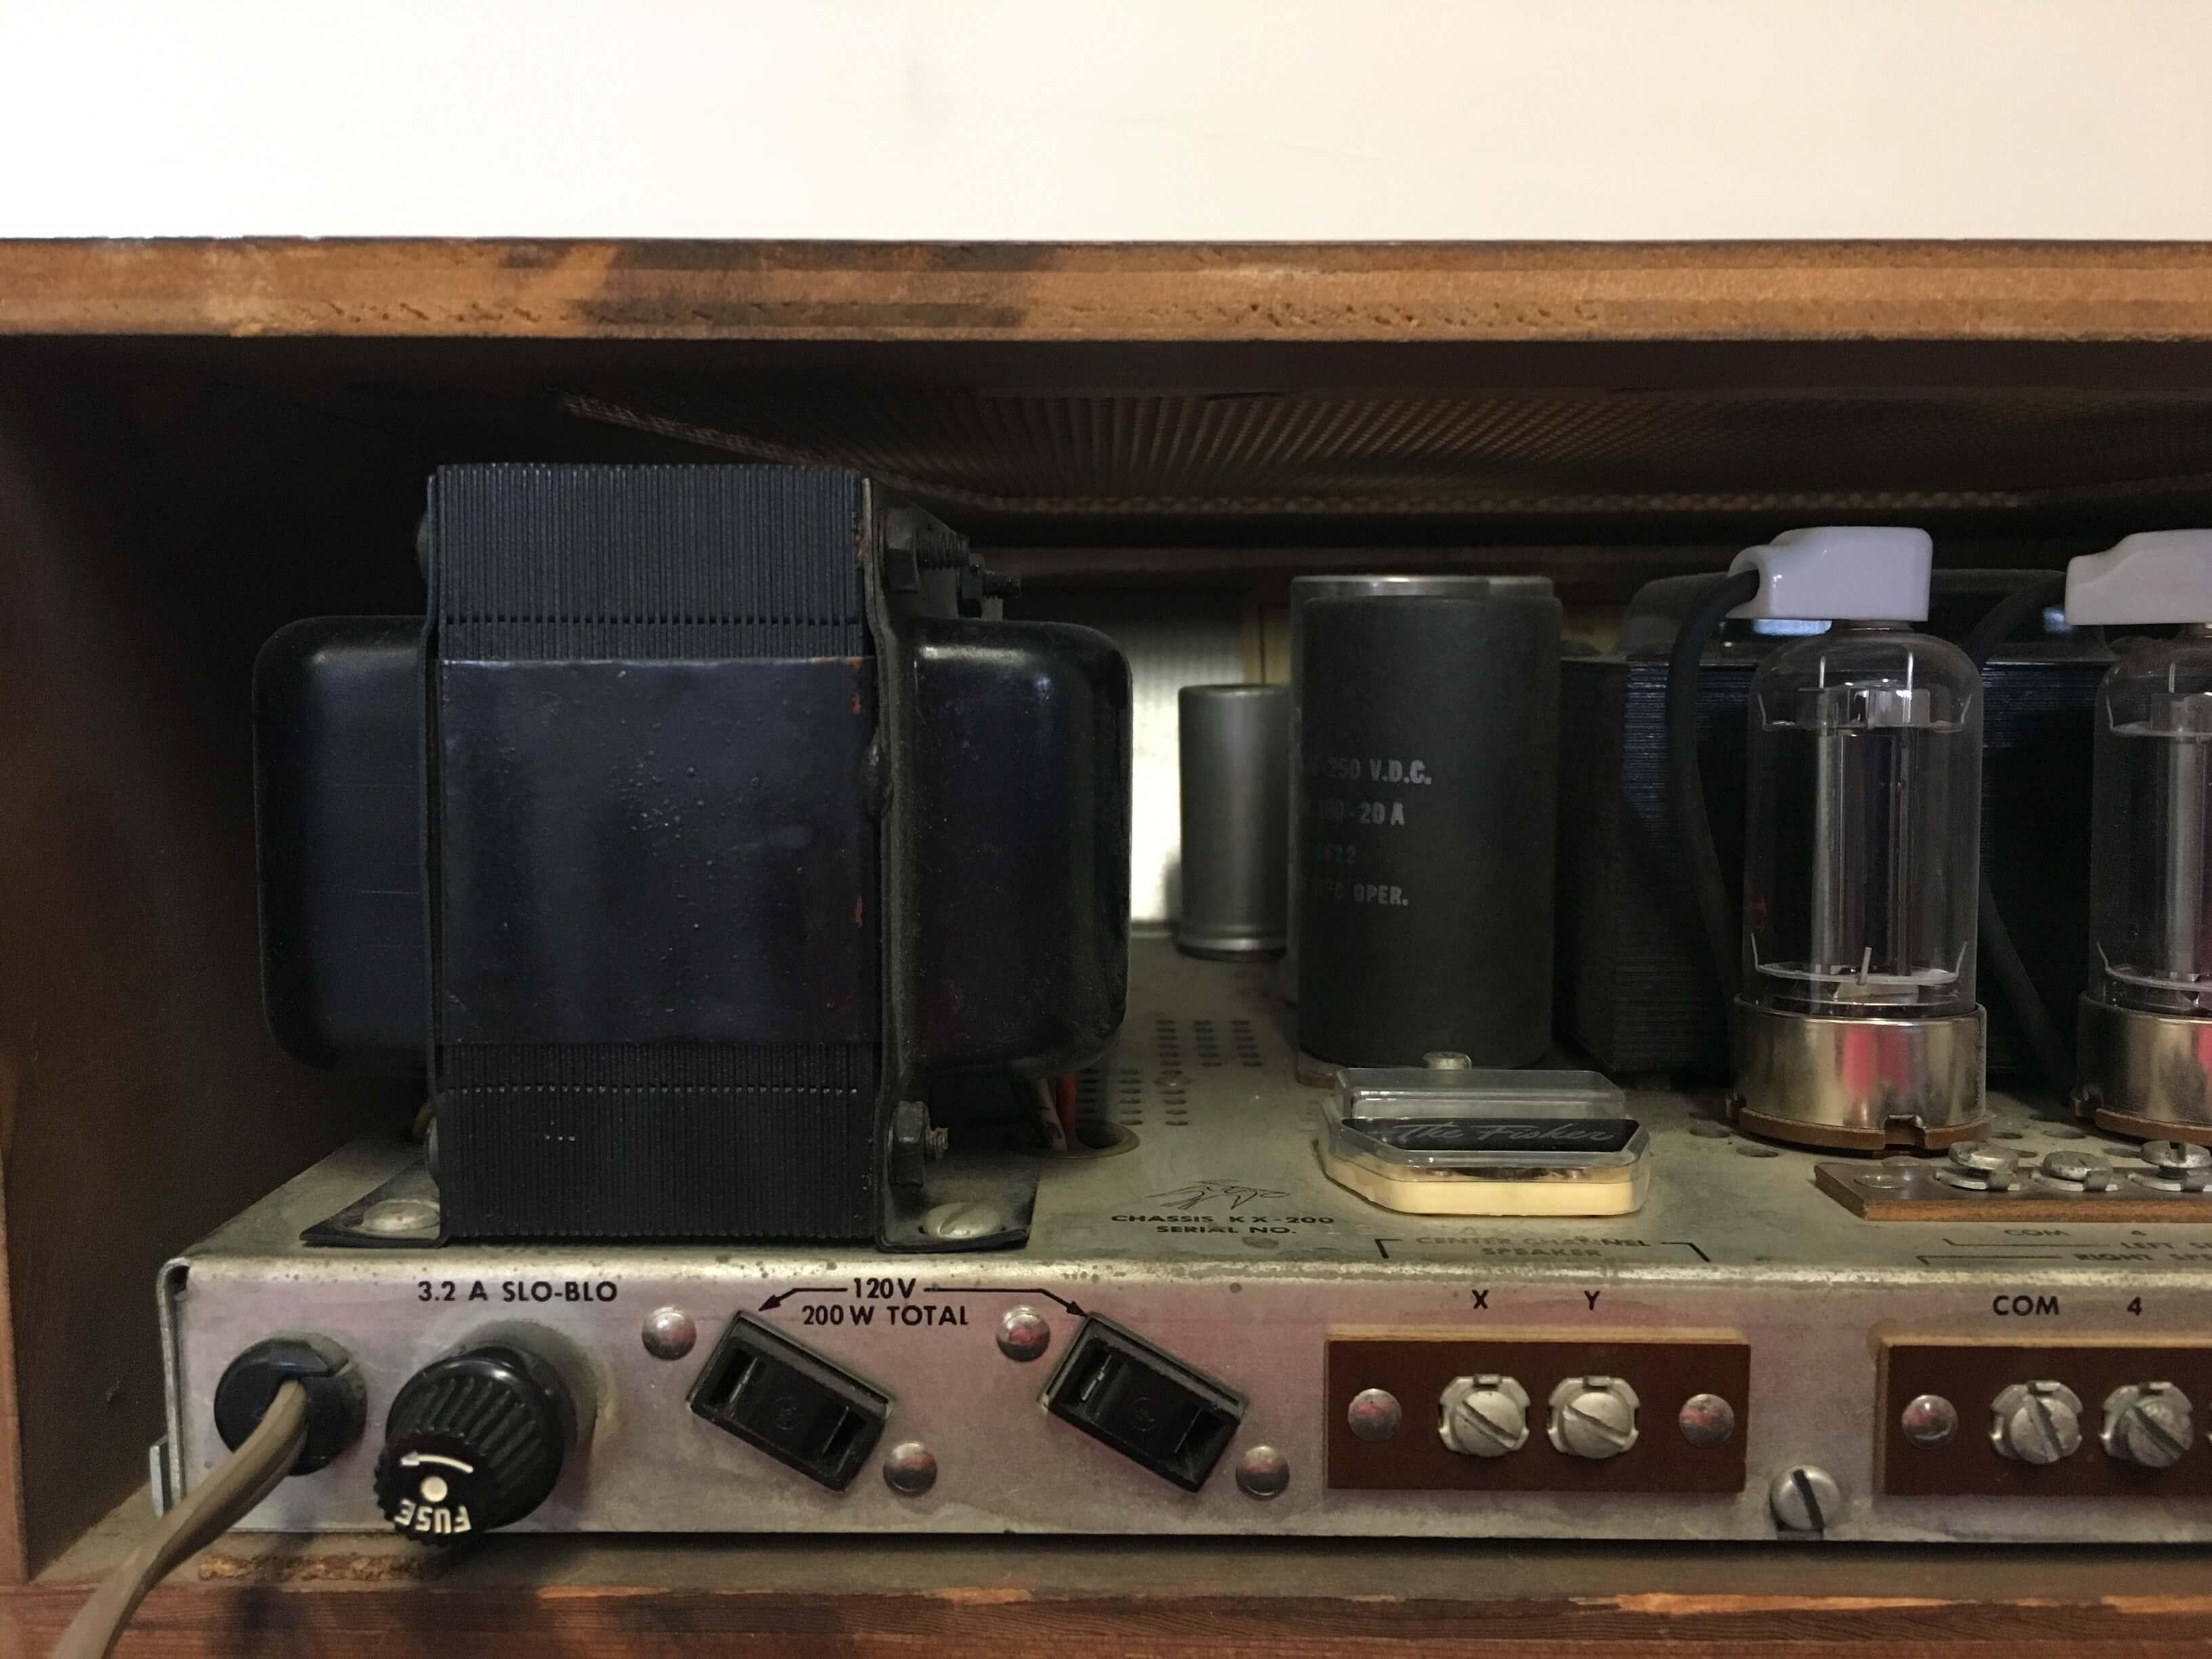 The Fisher KX-200 Stereo Master control tube amplifier